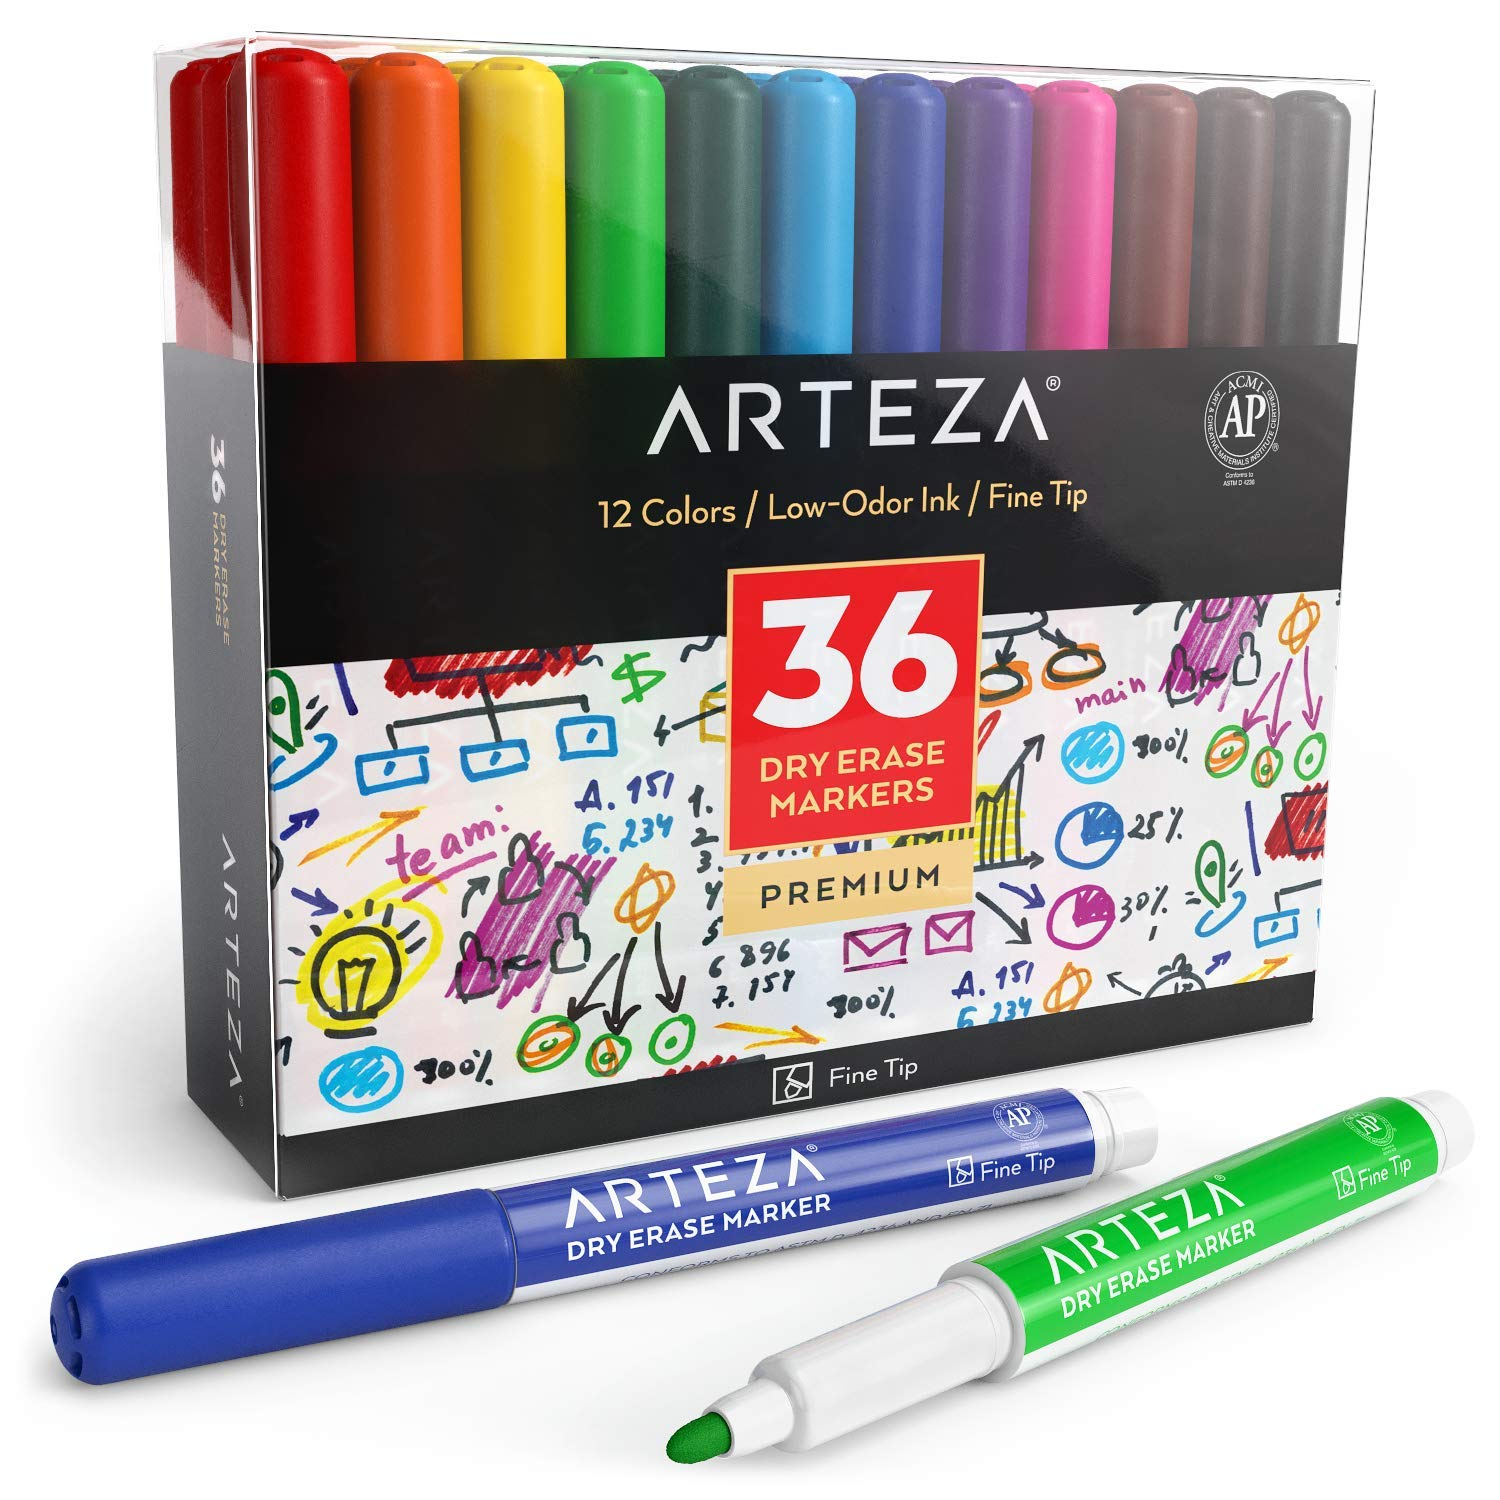 ARTEZA Dry Erase Markers, Pack of 36 (with Fine Tip), 12 Assorted Colors with Low-Odor Ink, Whiteboard Pens is perfect for School, Office, or Home by ARTEZA (Image #1)